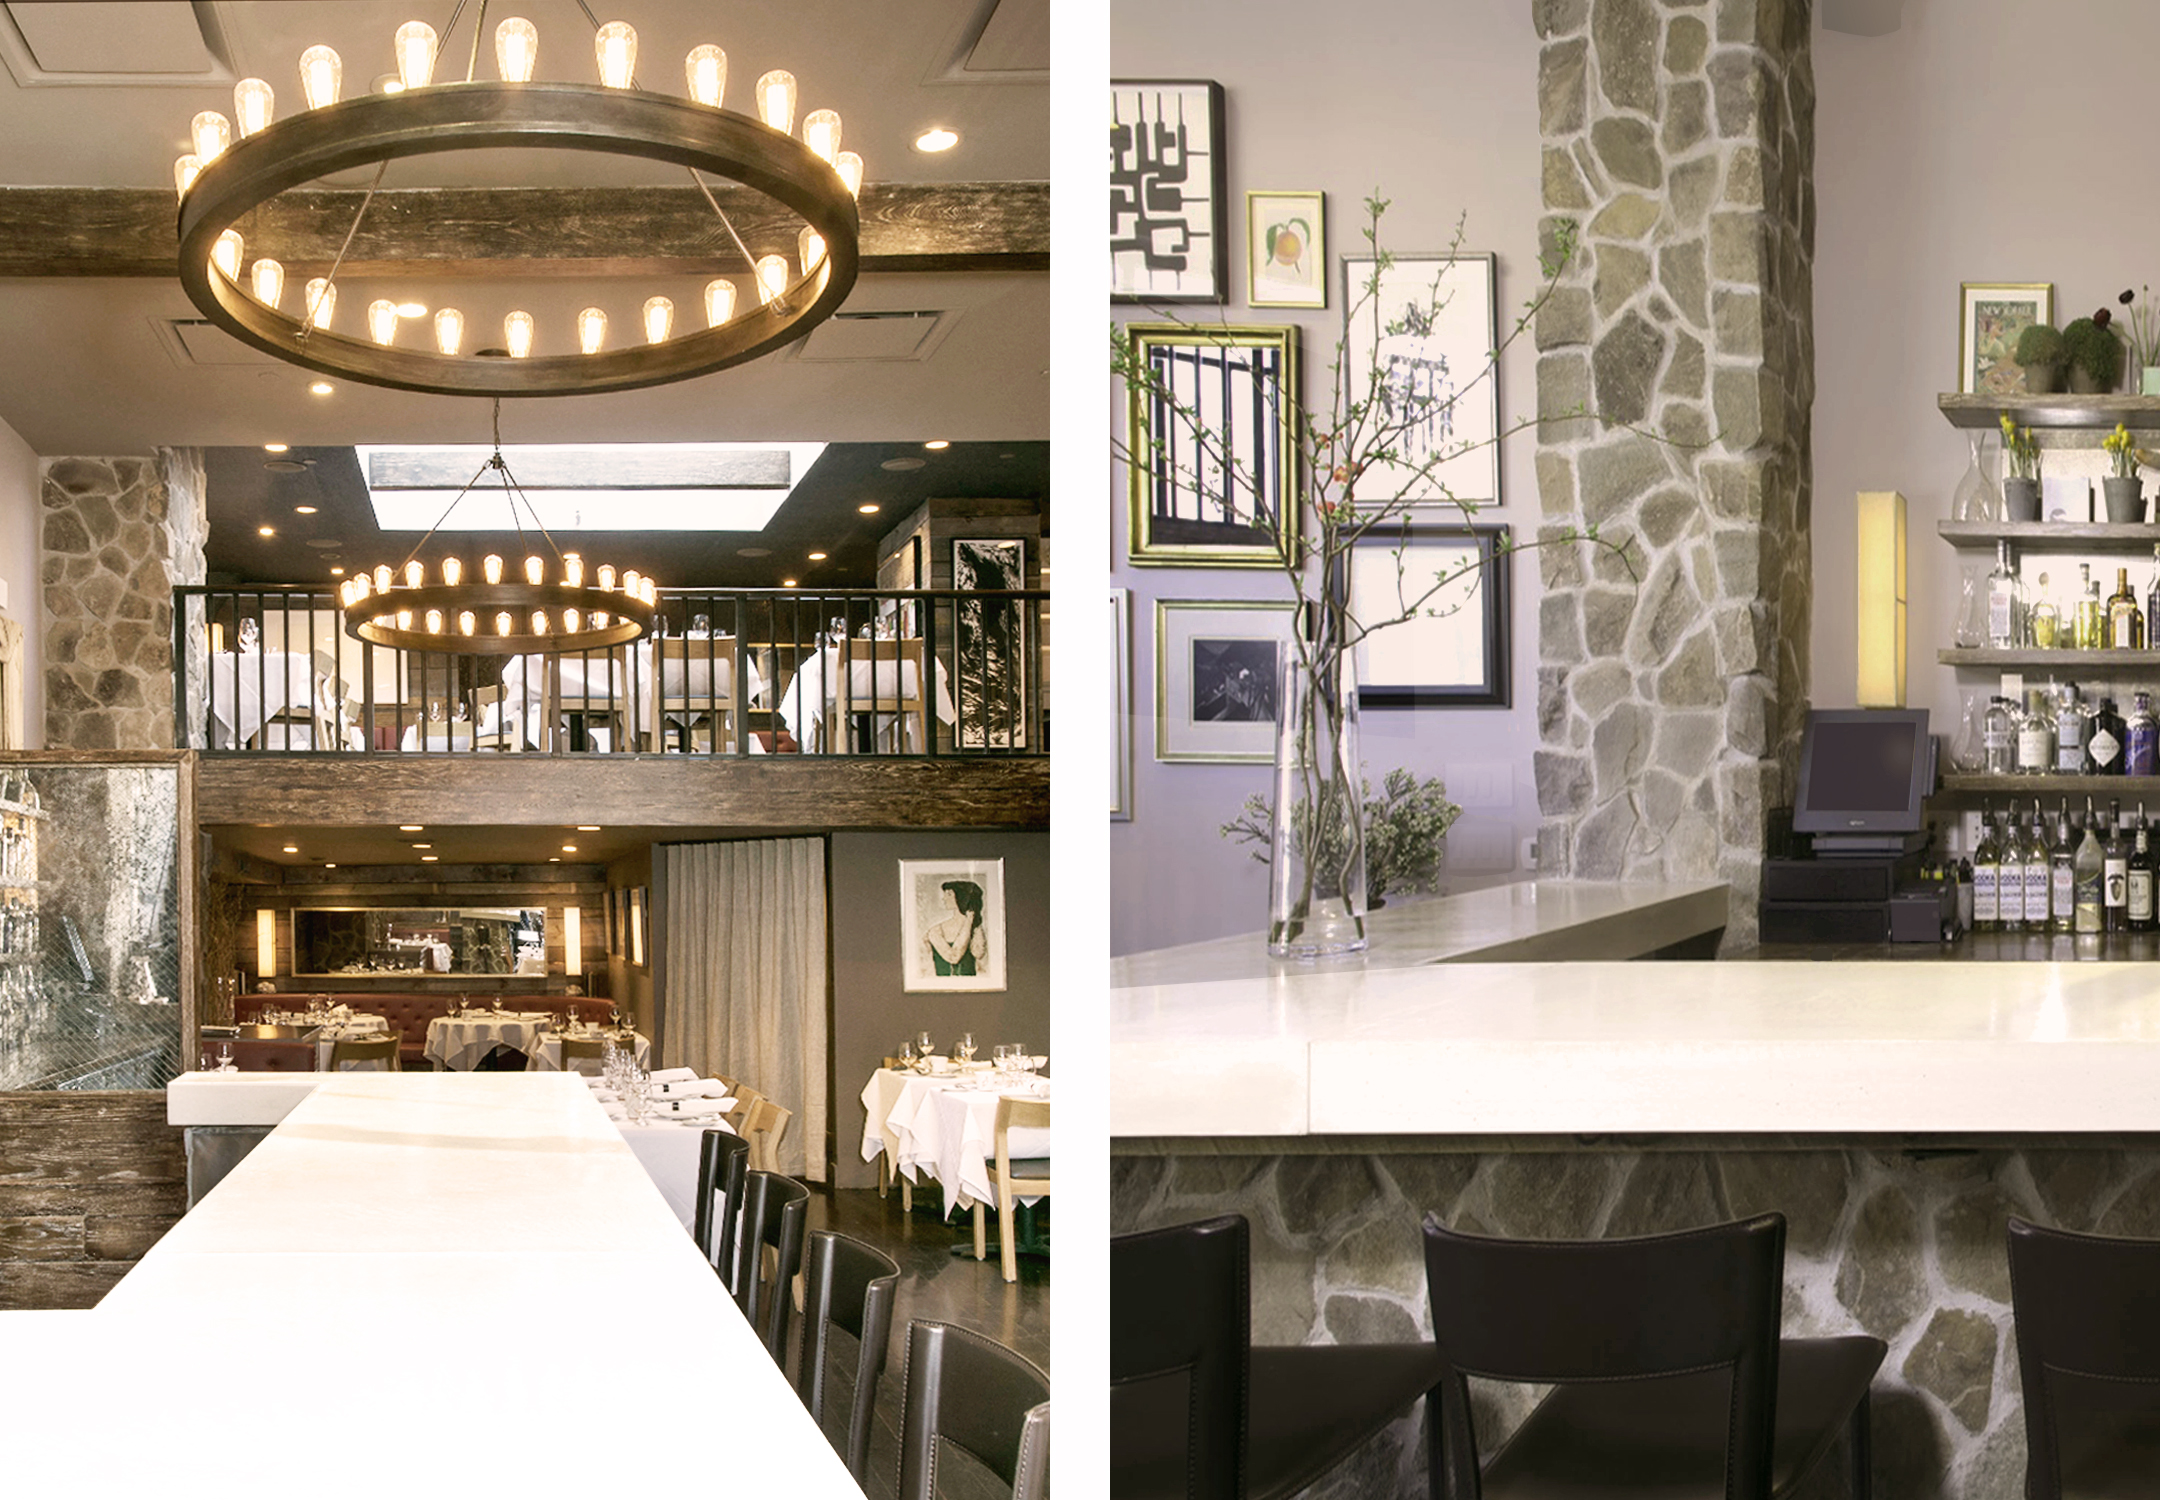 New Custom-Designed Poured Concrete Bar Countertop, with Chandelier over serves as the Dining Hall's Focal-point